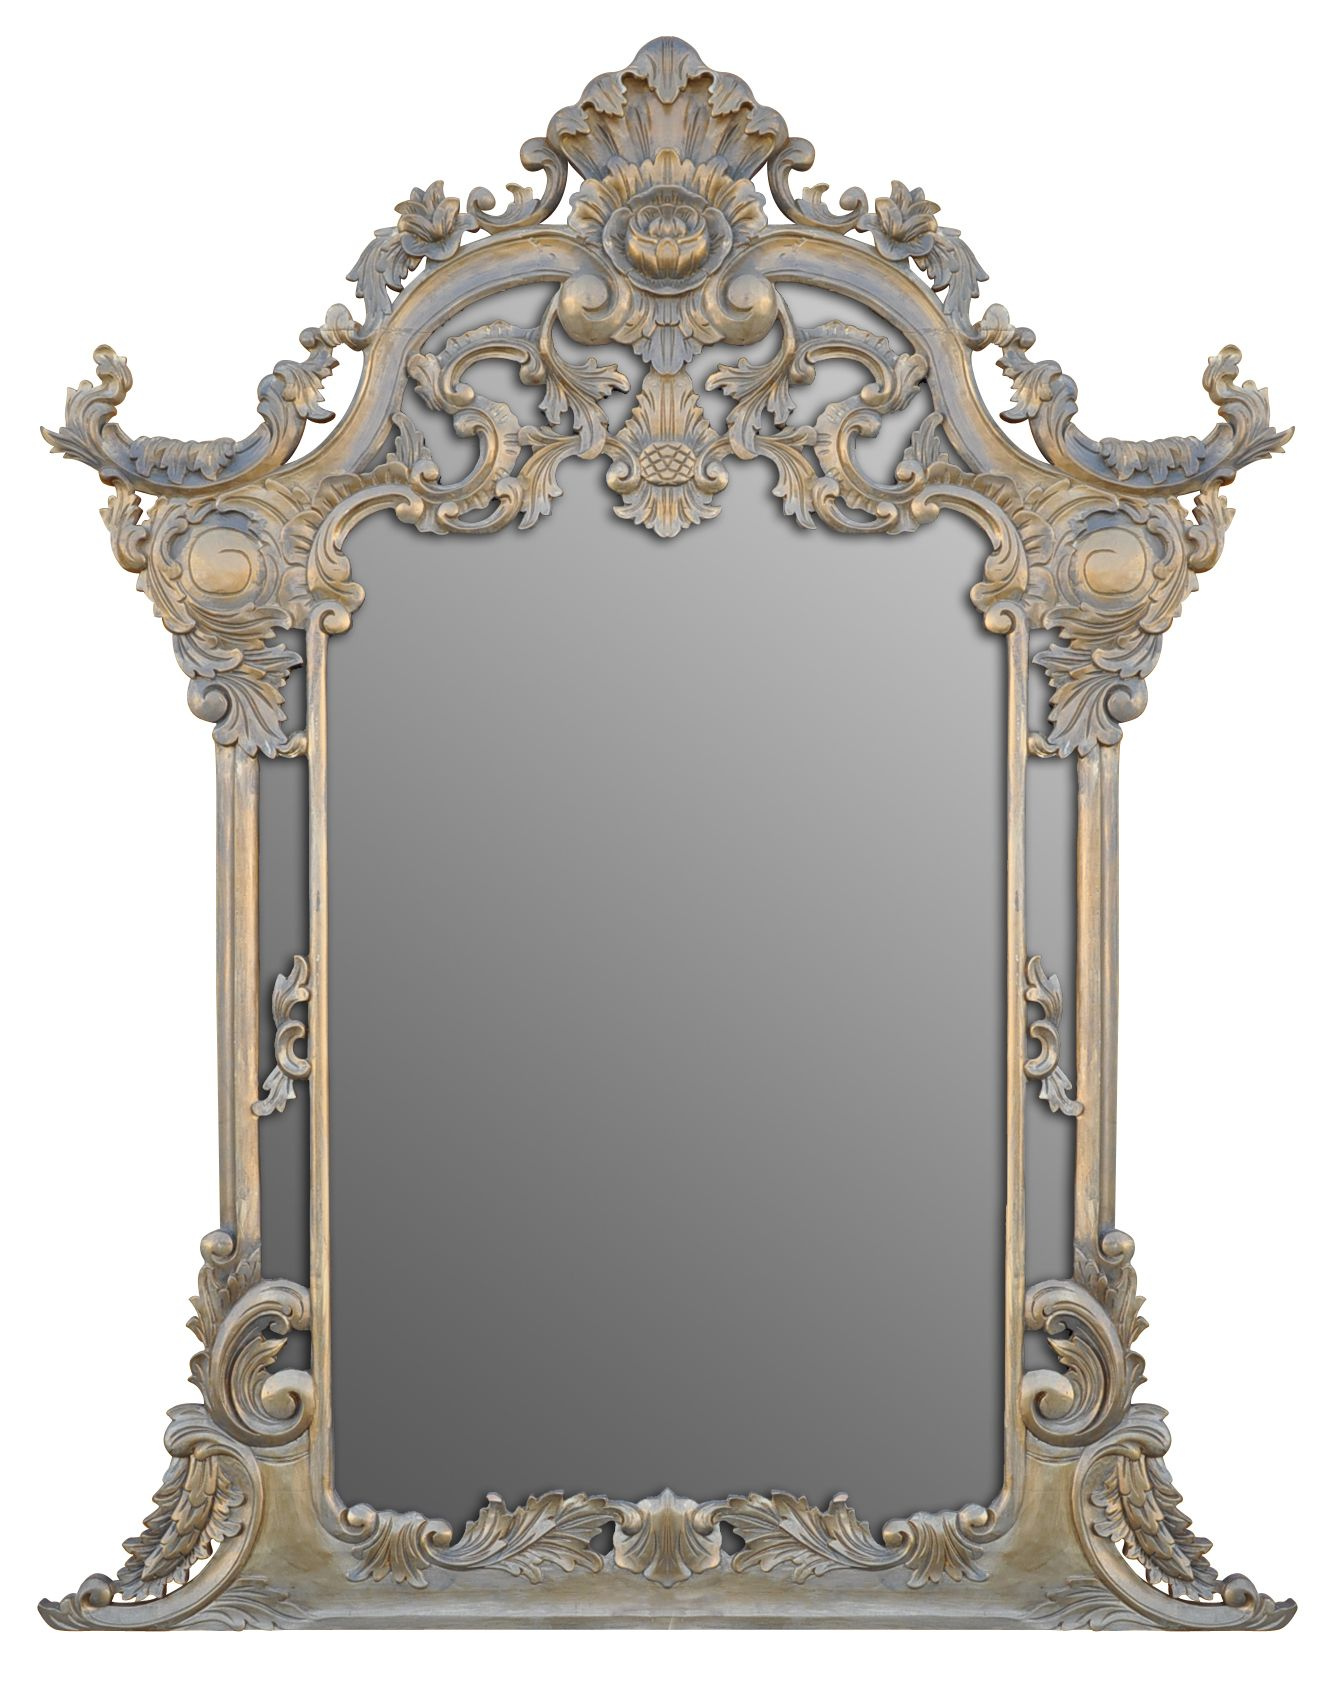 Antique frame | Antique frames, Mirror, Gold framed mirror